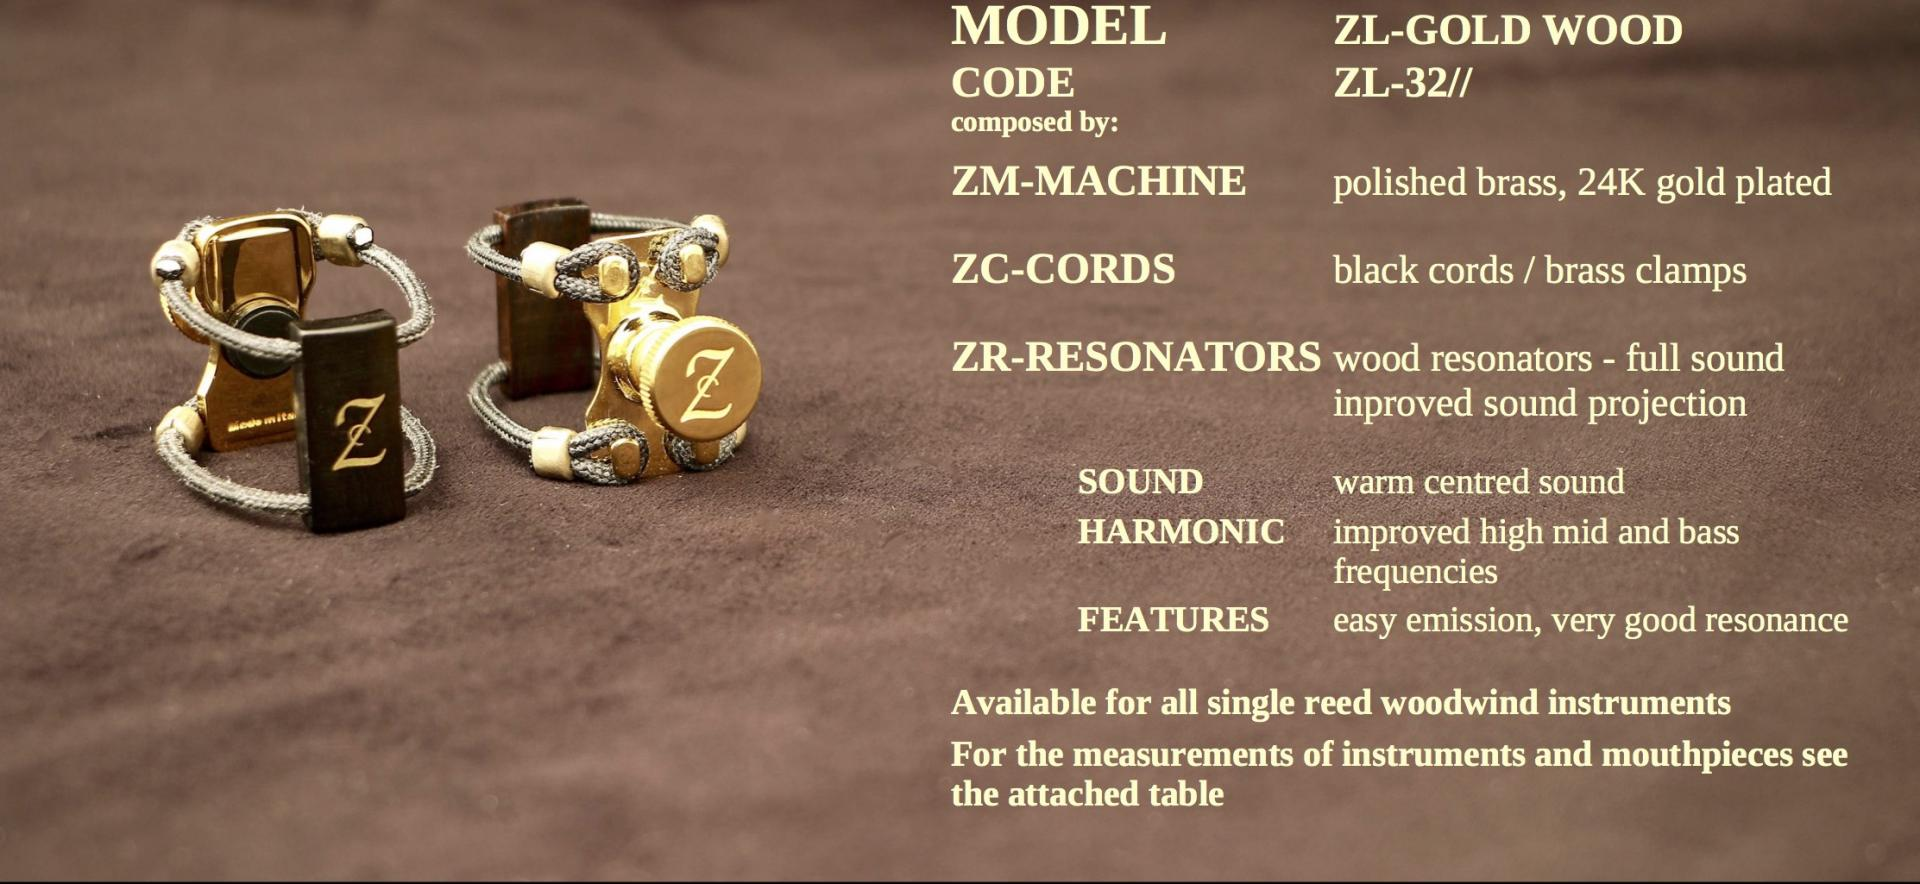 ZAC LIGATURE MODEL: ZL-GOLD WOOD